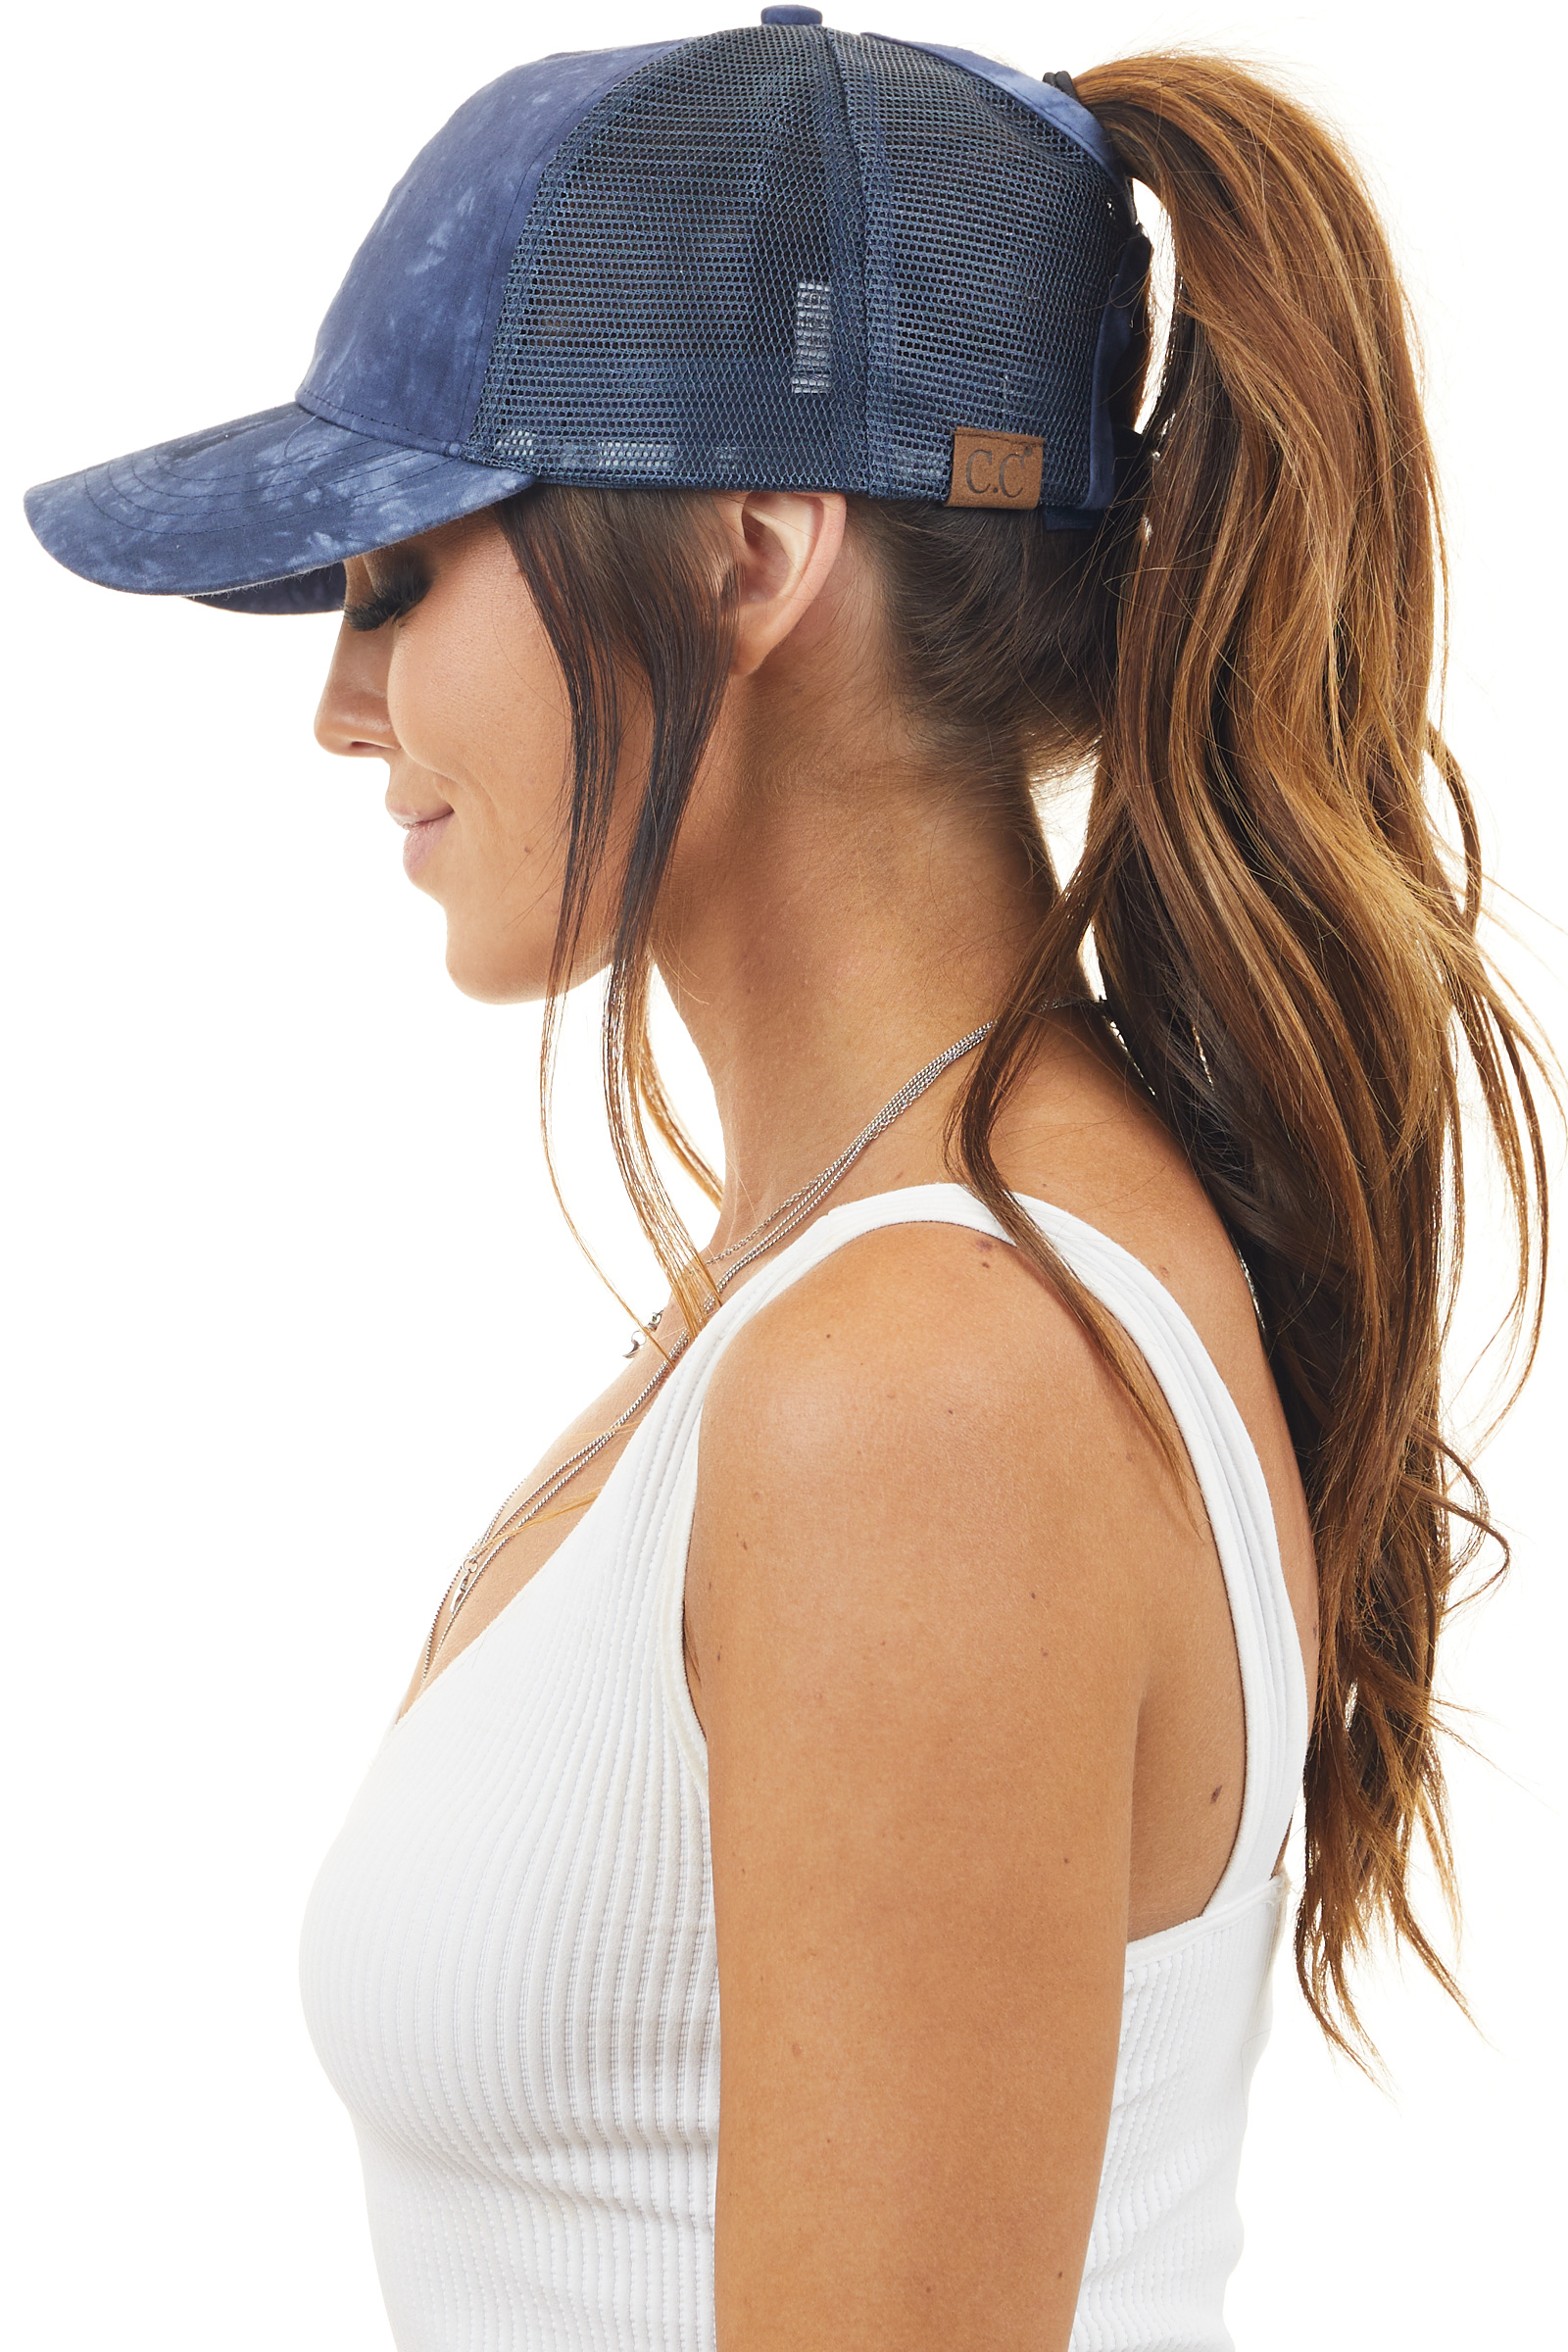 Navy Blue Tie Dye Ponytail Trucker Cap with Mesh Back